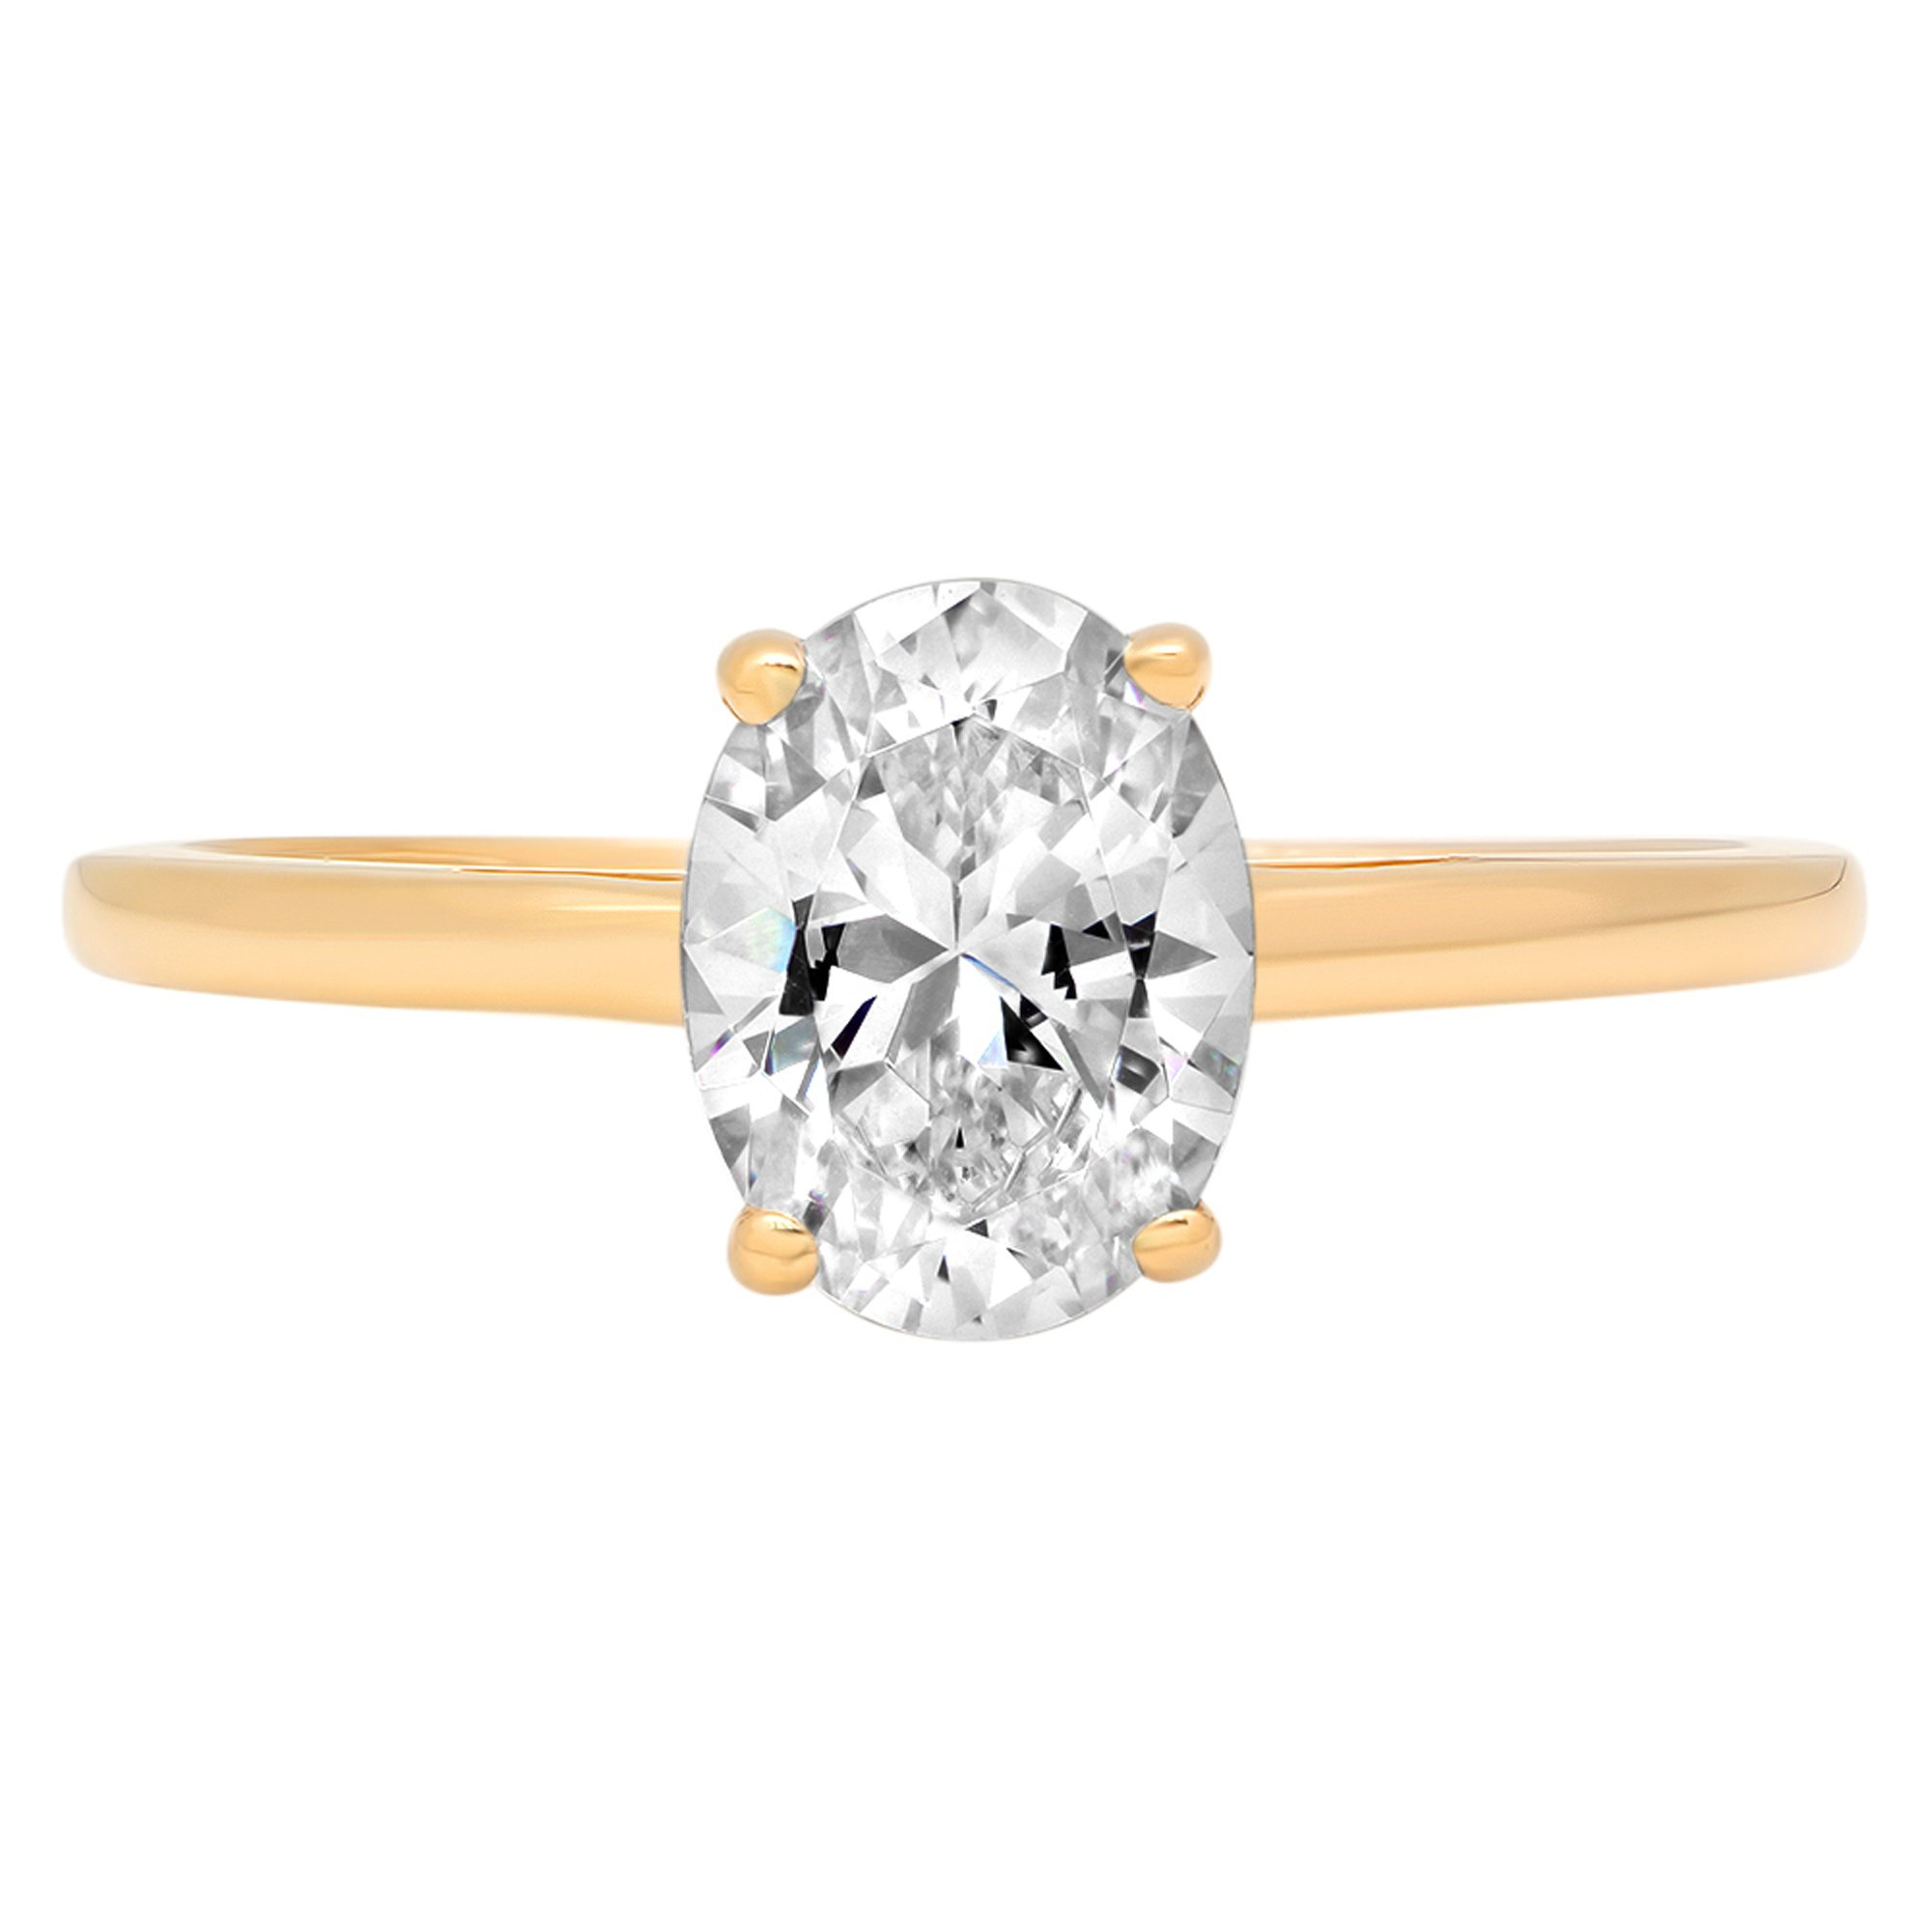 1.70 Ct Moissanite Heart Cut Solitaire Bridal Engagement Promise Wedding Statement Anniversary Ring Solid 14k Yellow Gold